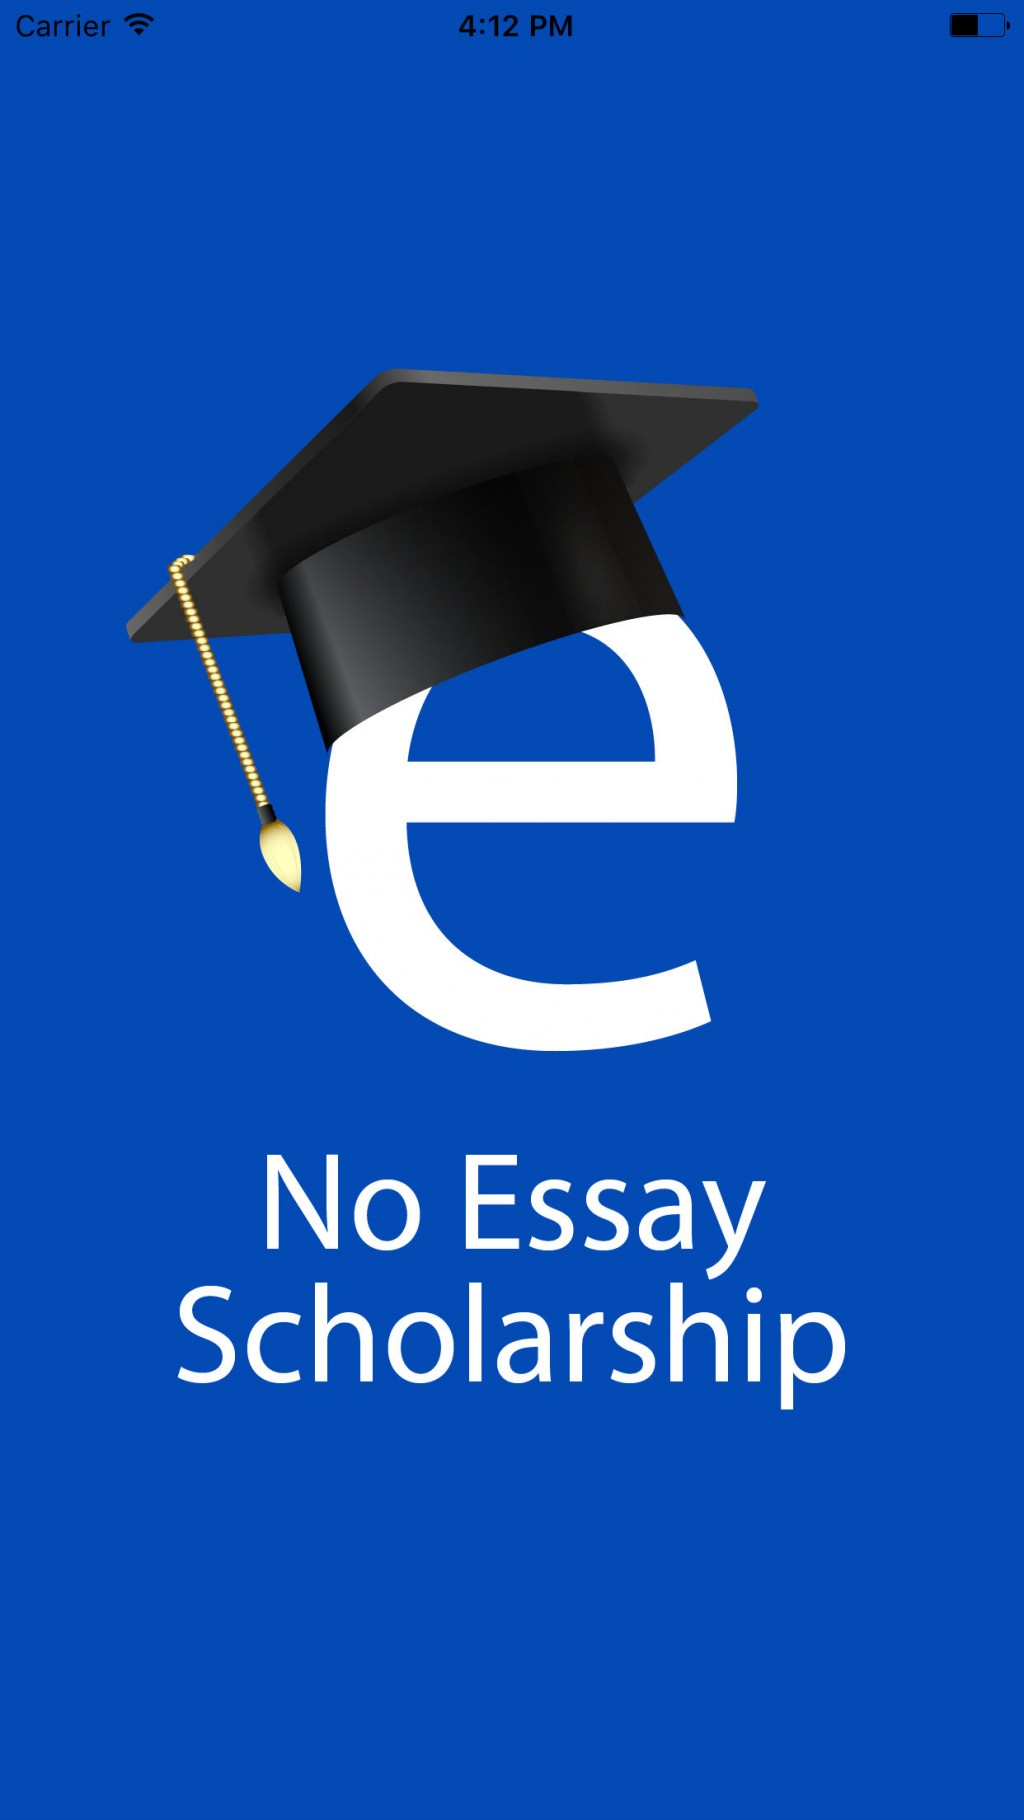 011 Essay Scholarship Search Push Apply Hafiz Adnan Shafiq No Applications Required Free Contest For High School Seniors Fast Legit App Cappex College Prowler Scam Review Rare Scholarships 2018 Short Large